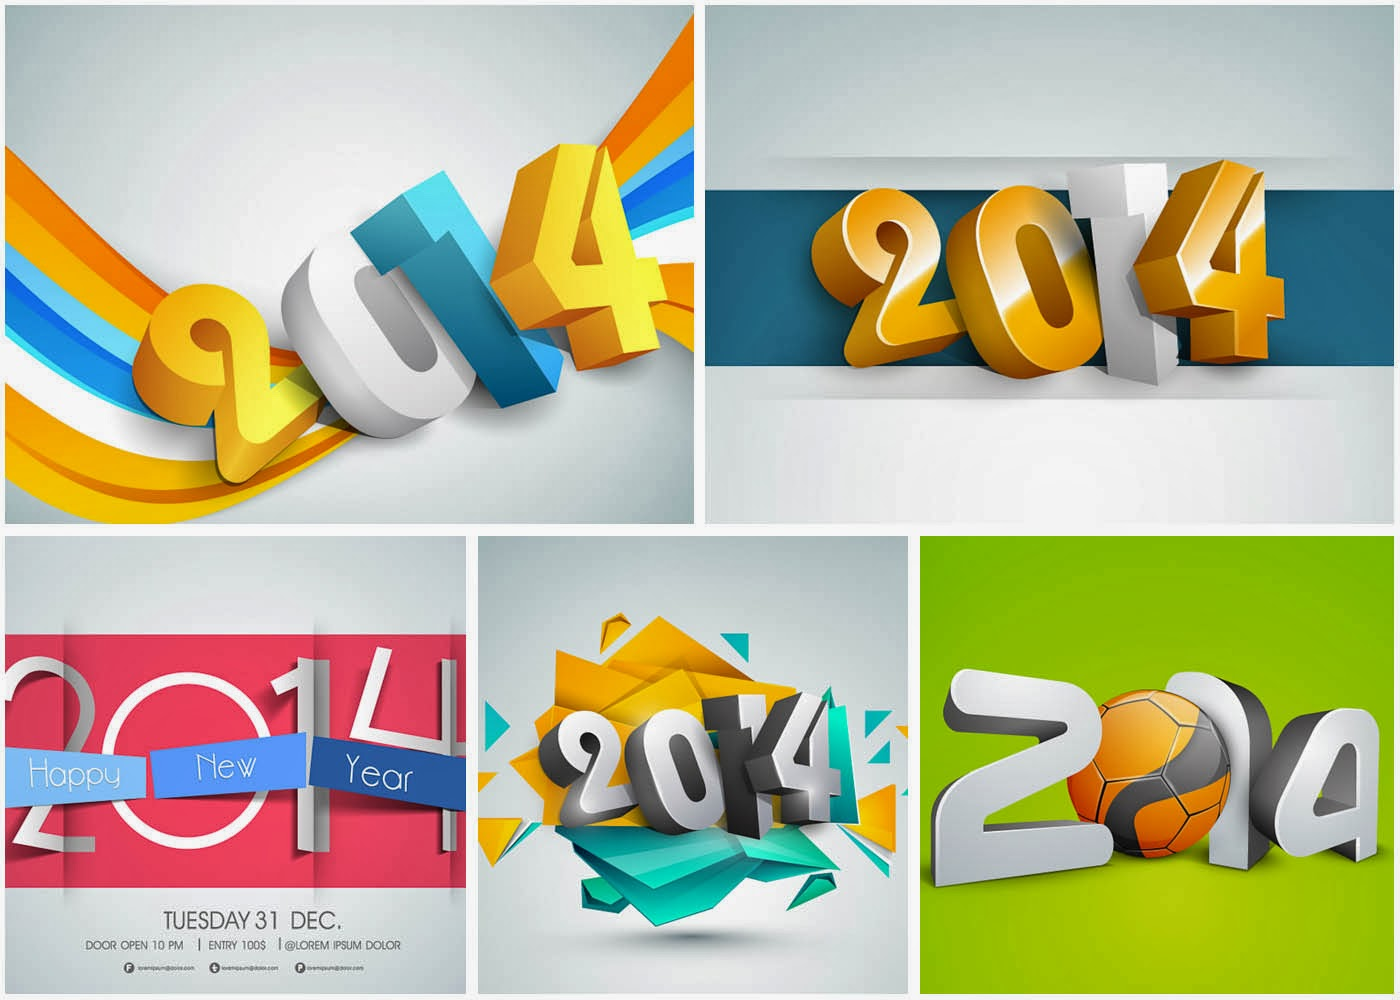 New year 2014 greetings cards download happy new year greeting happy new year 2014 happy new year 2014 m4hsunfo